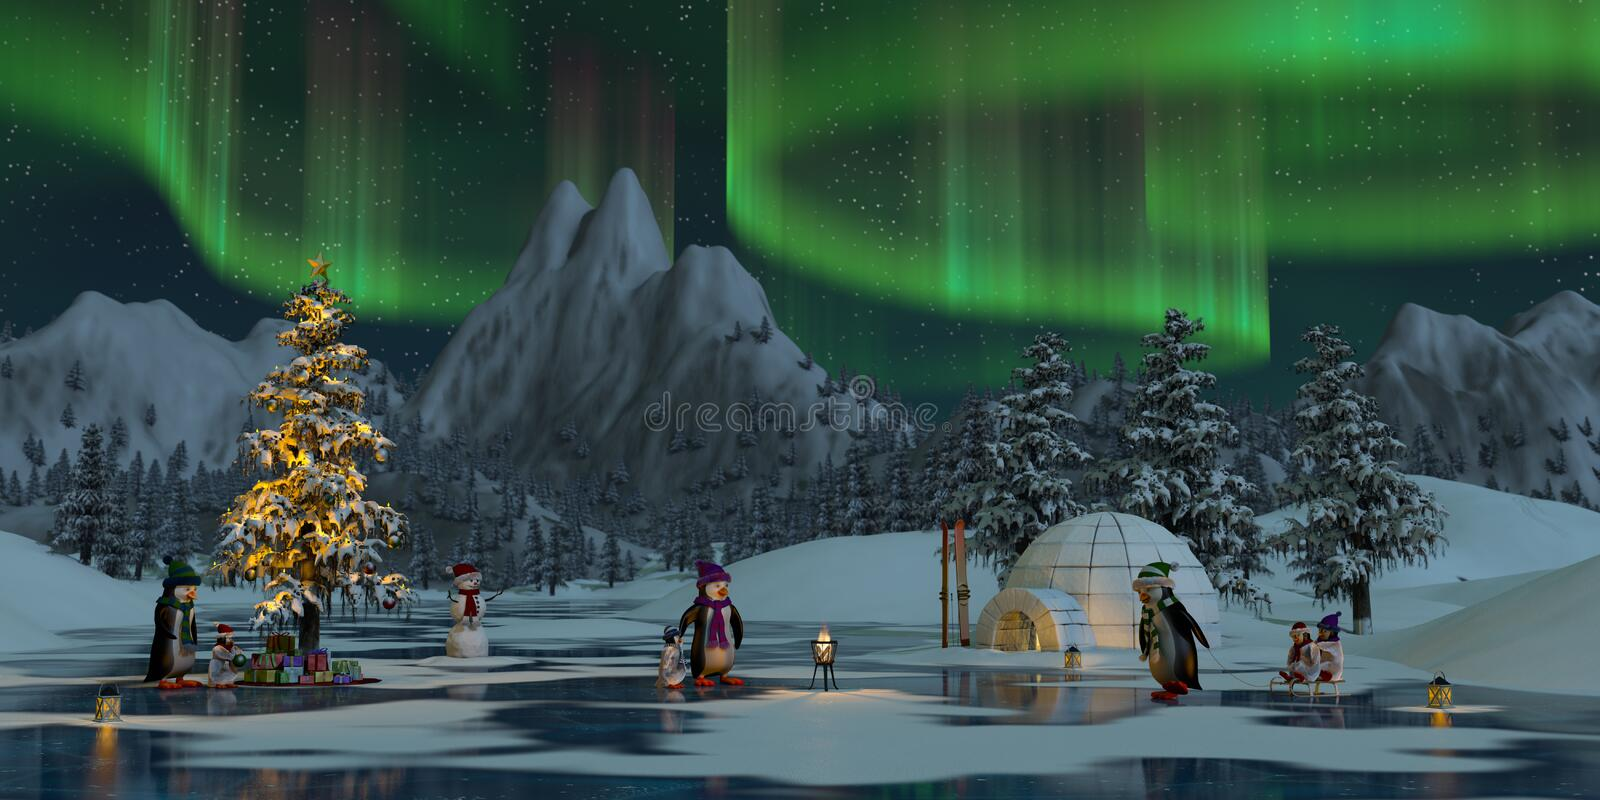 Penguins under the northern lights at Christmas time stock photography